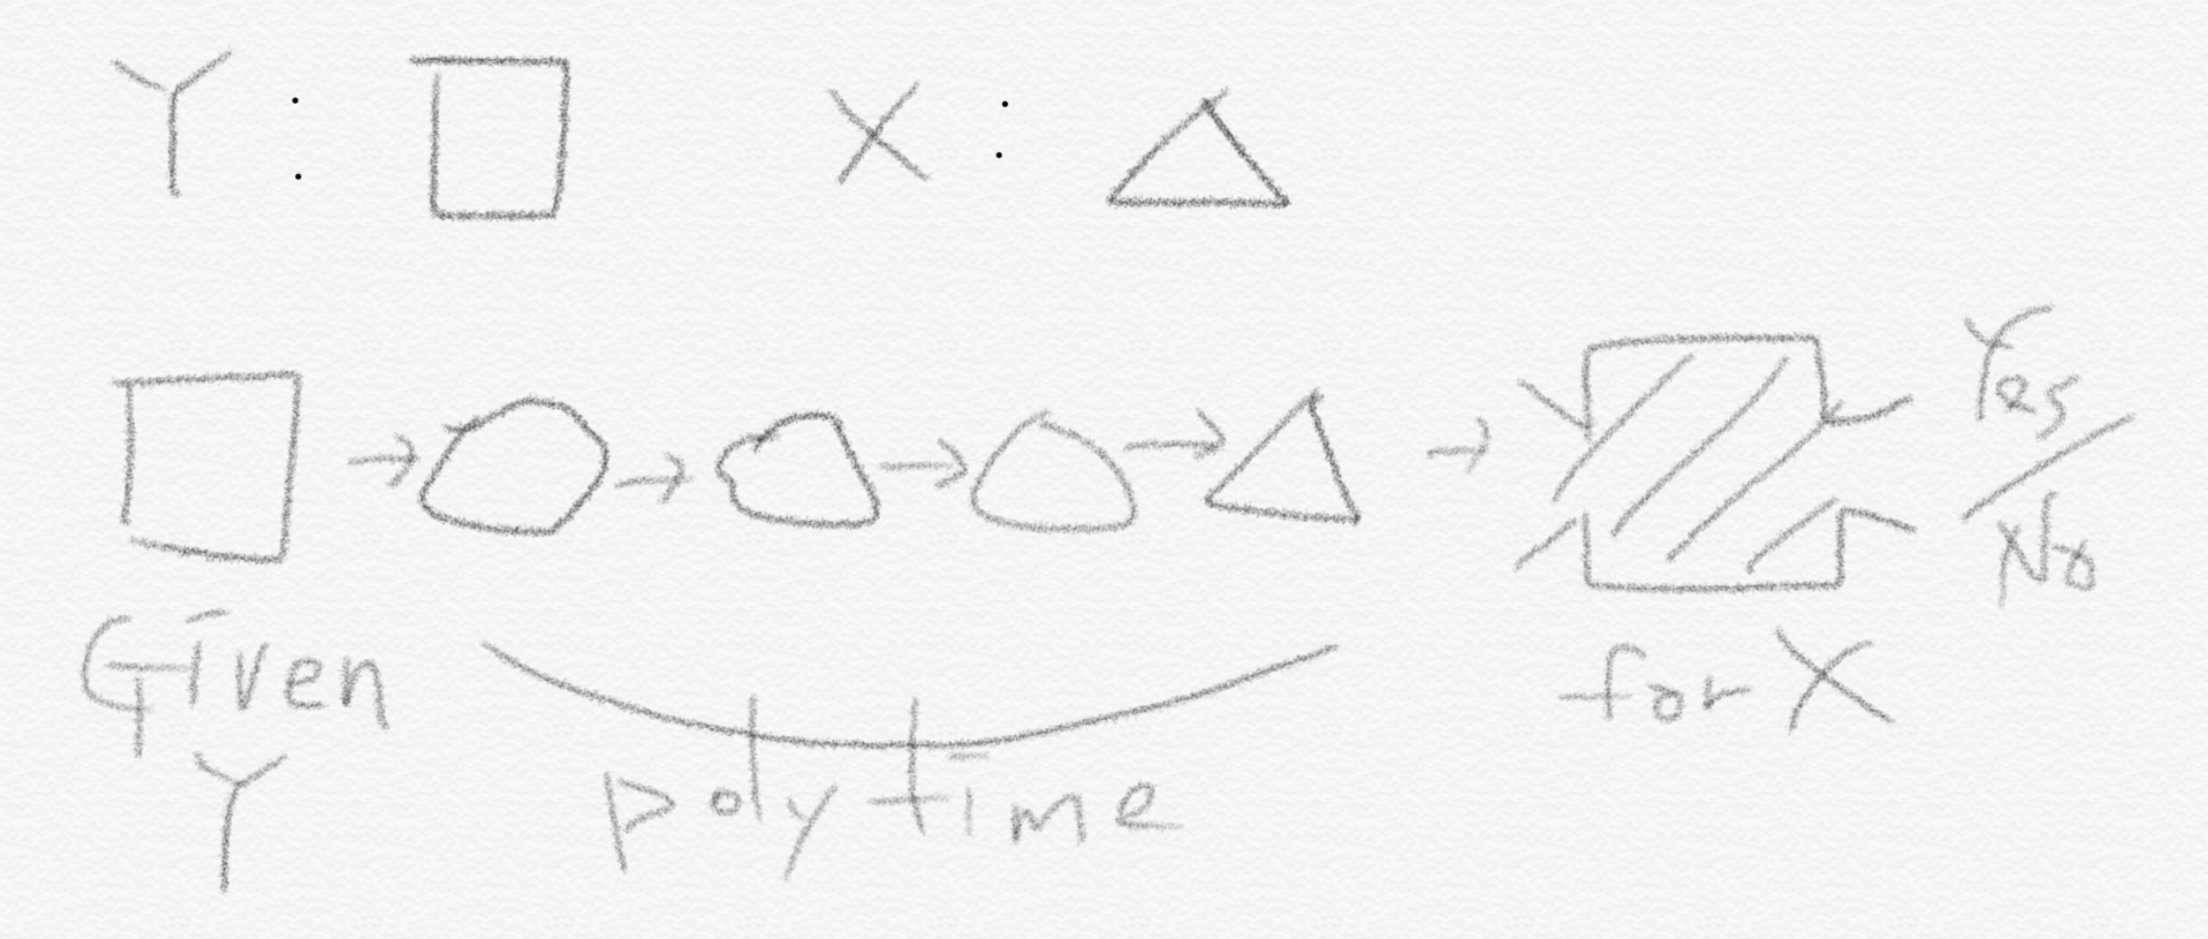 Polynomial-time reducible